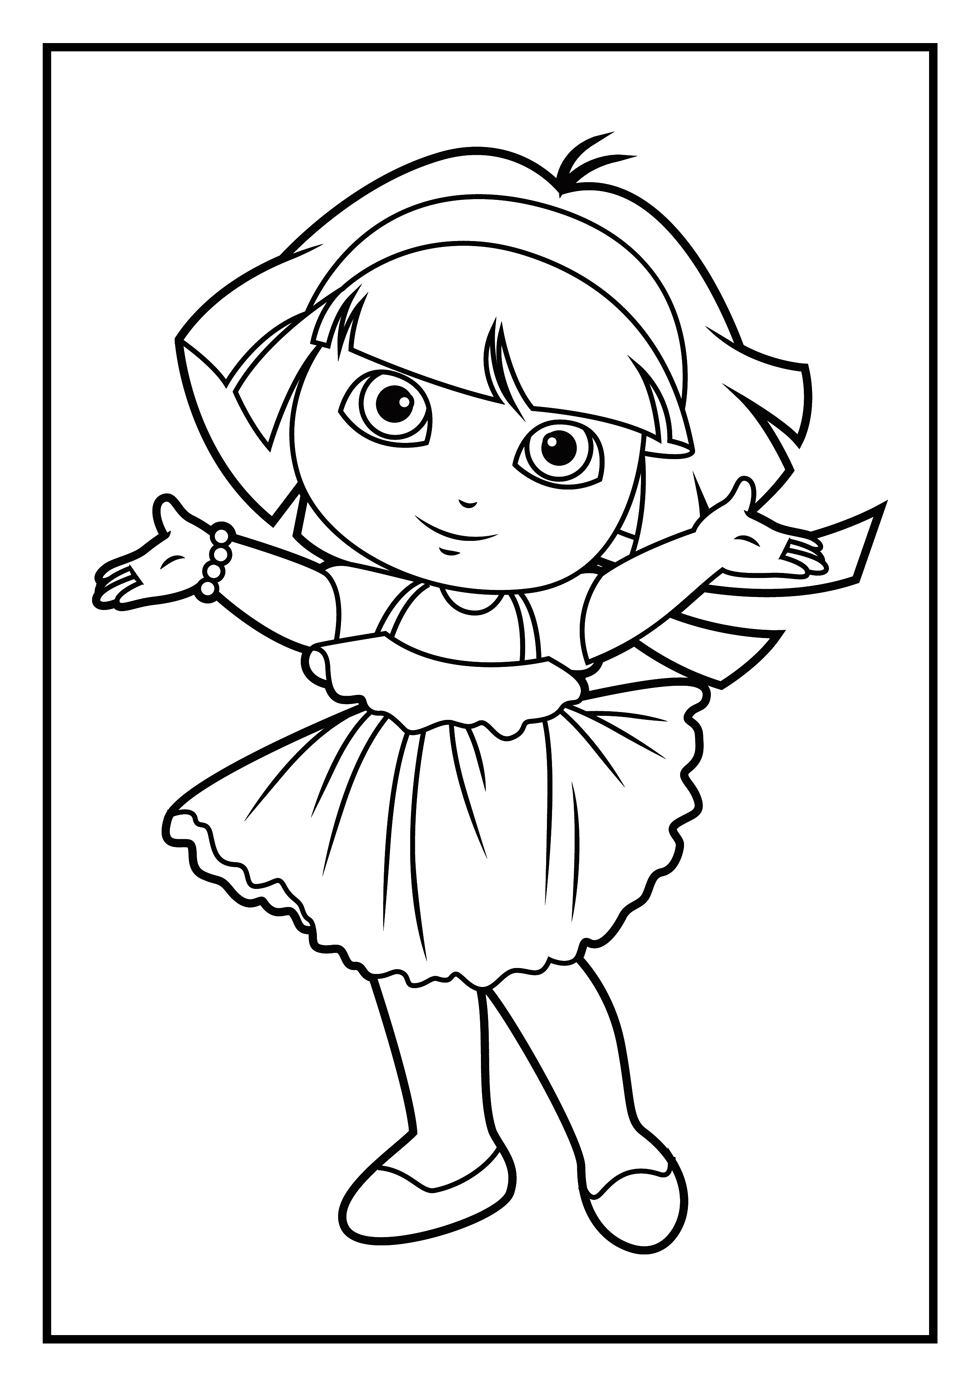 Dora Coloring Pages To Print Free Coloring Pages Download | Xsibe ...